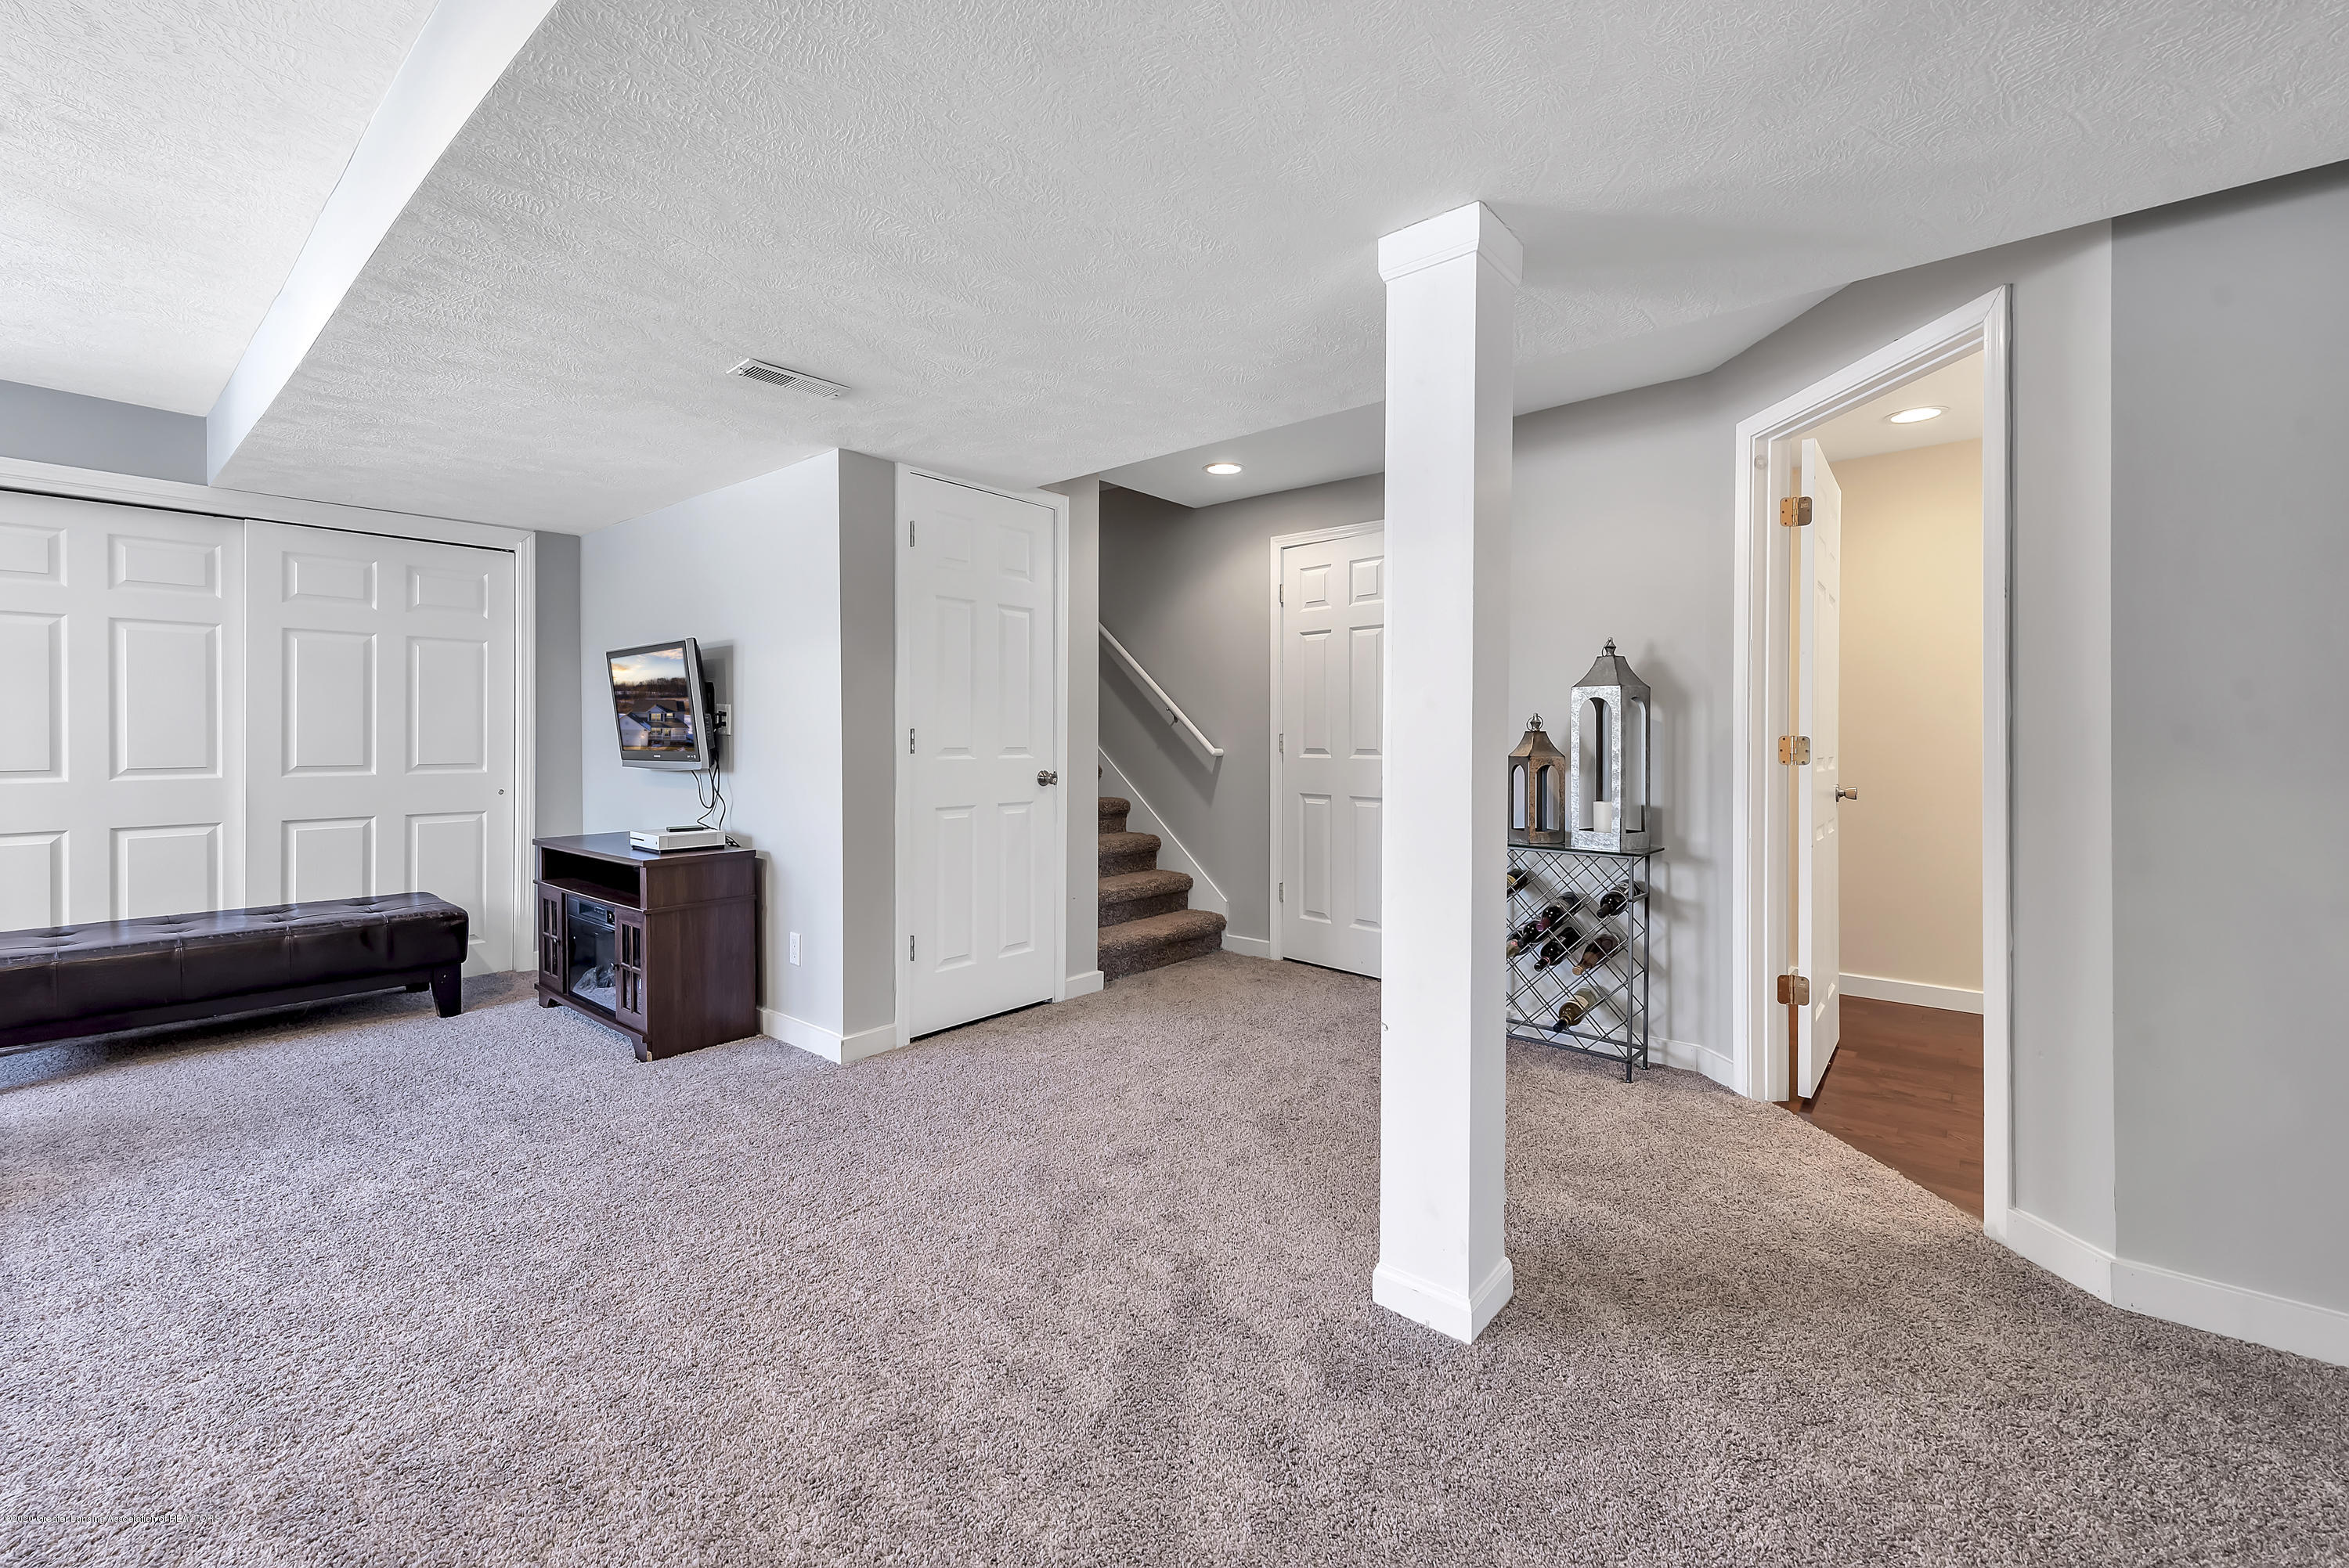 5206 Witherspoon Way - 5206-Witherspoon-Way-WindowStill-Real-Es - 38